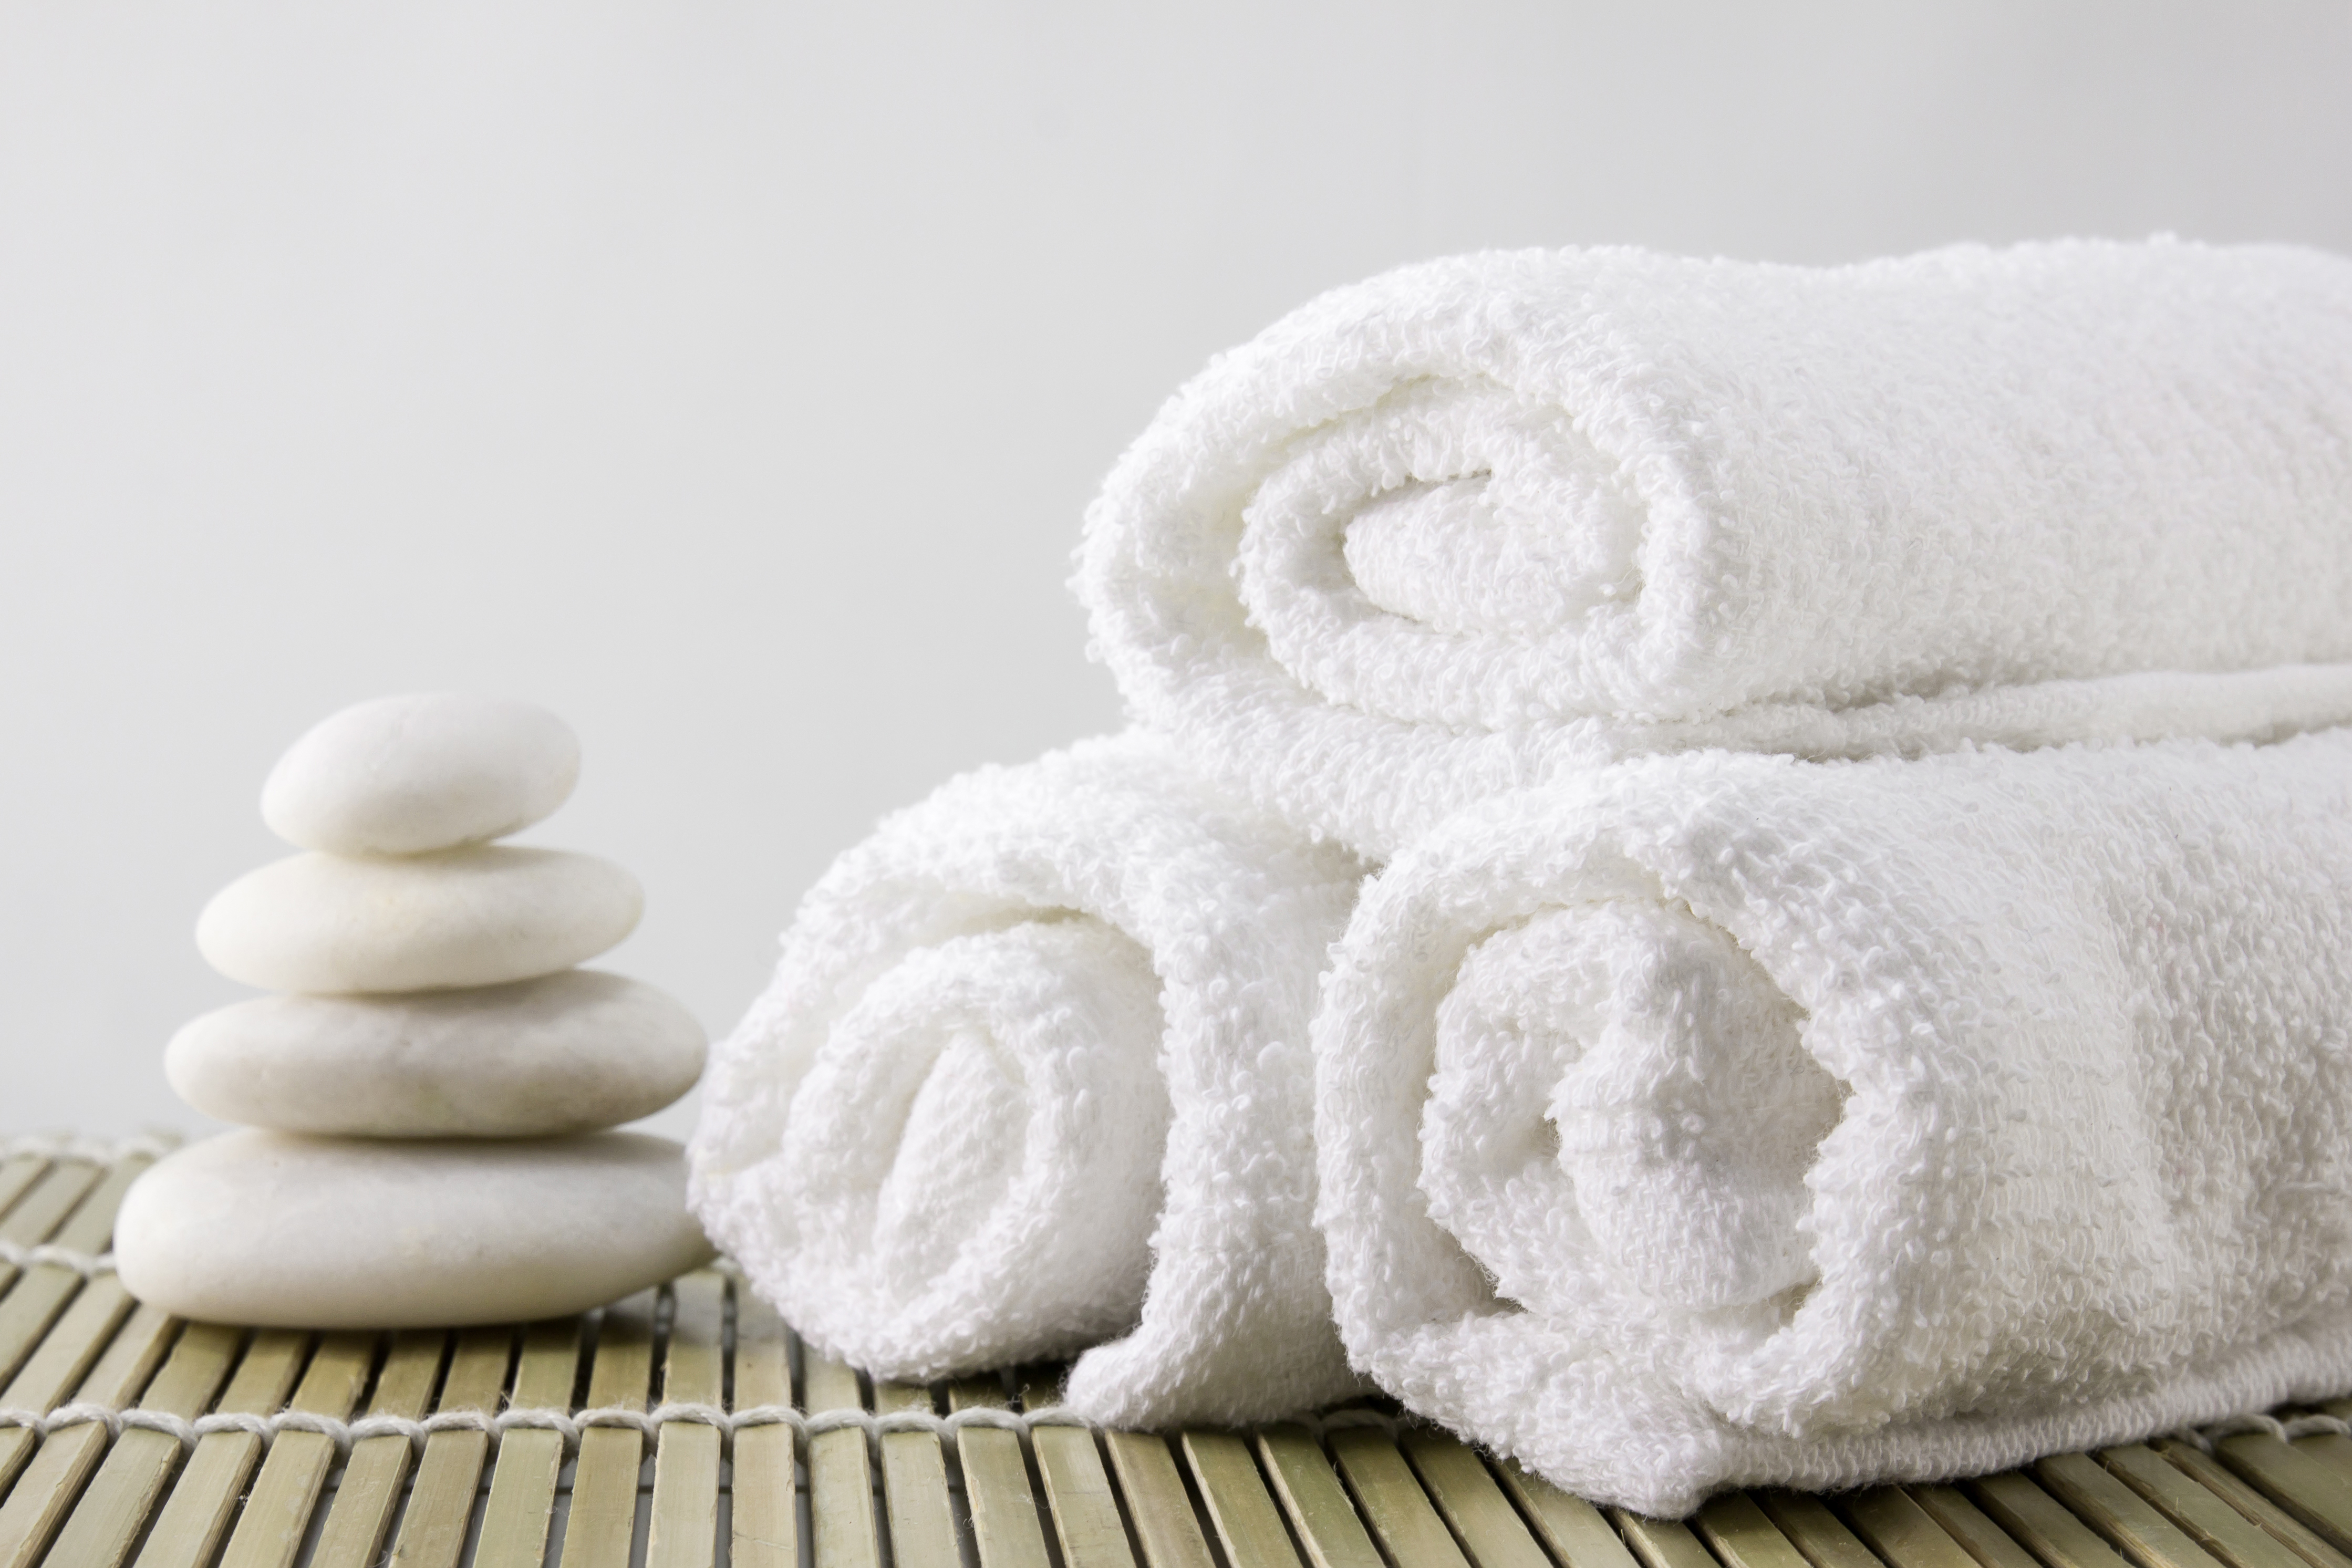 Spa towels for laundering